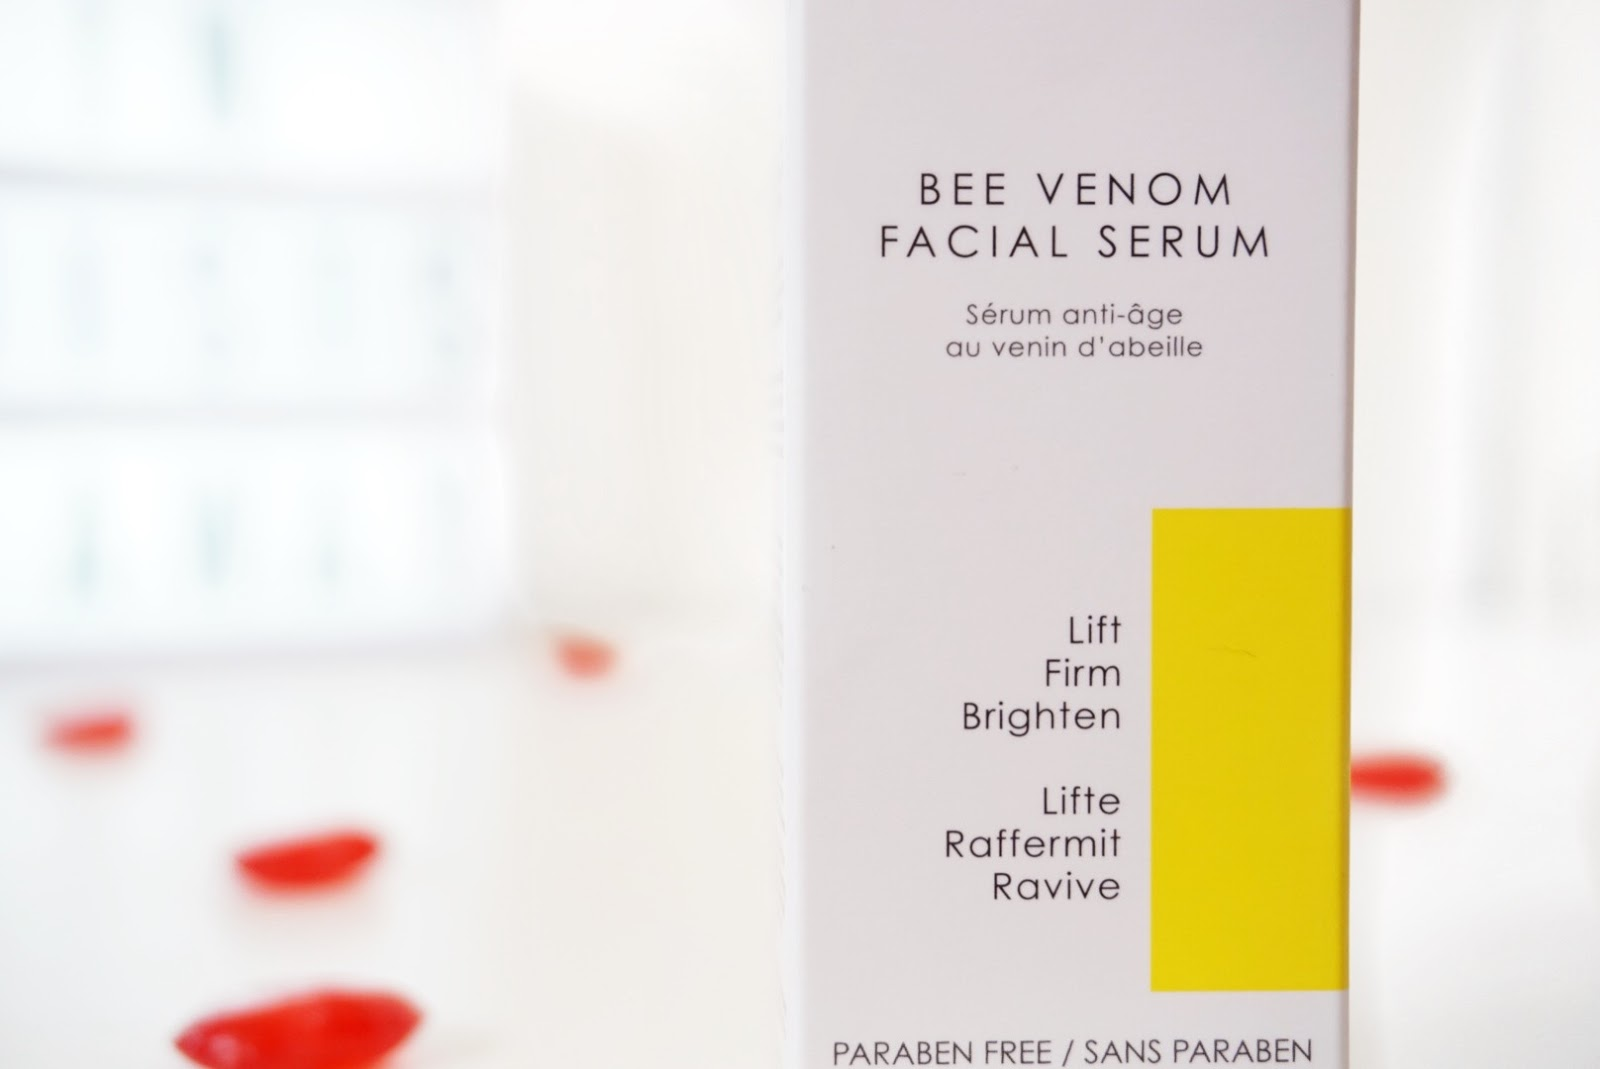 Skinchemists Bee Venom Facial Serum Packaging